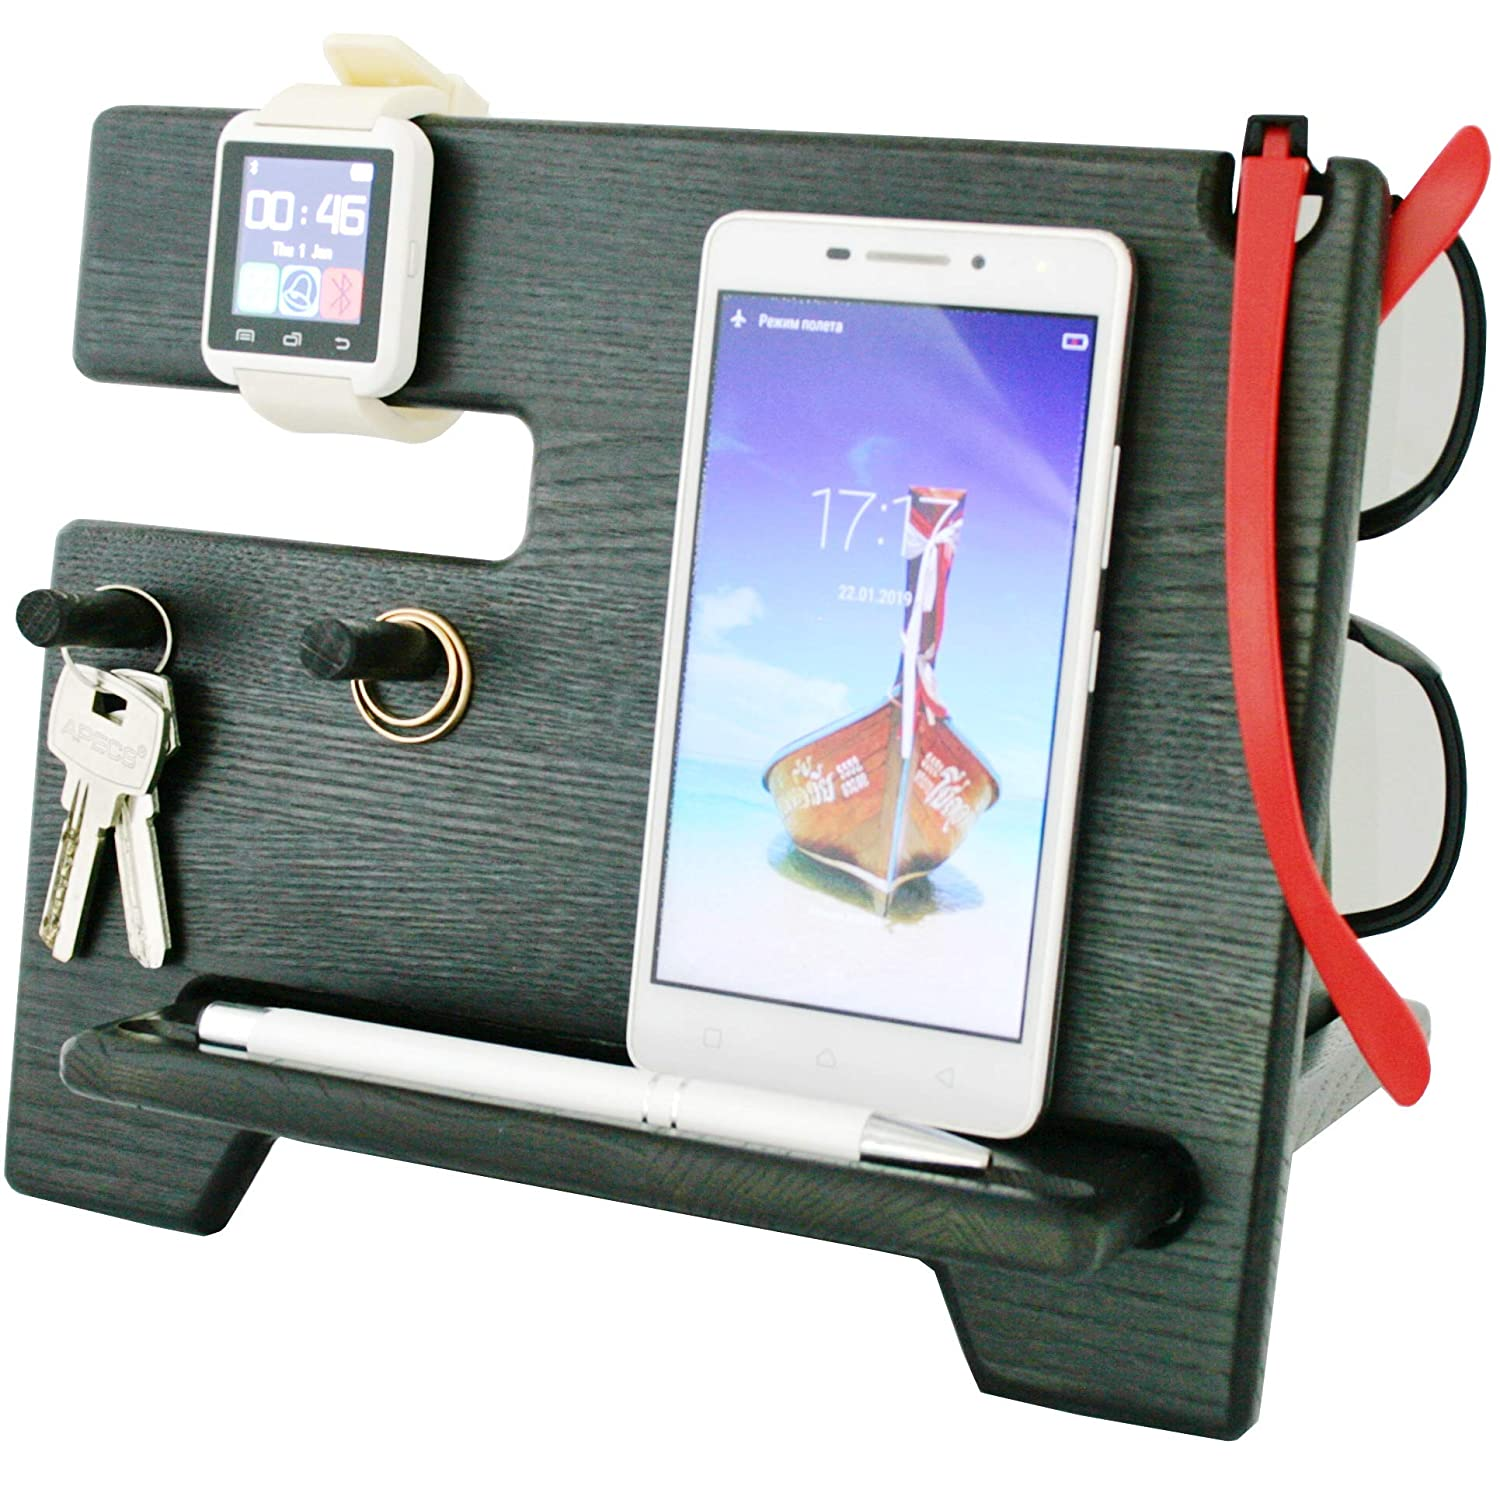 1x Auto Car Storage Mobile Phone GPS Charge Box Holder Pocket Organizer Black